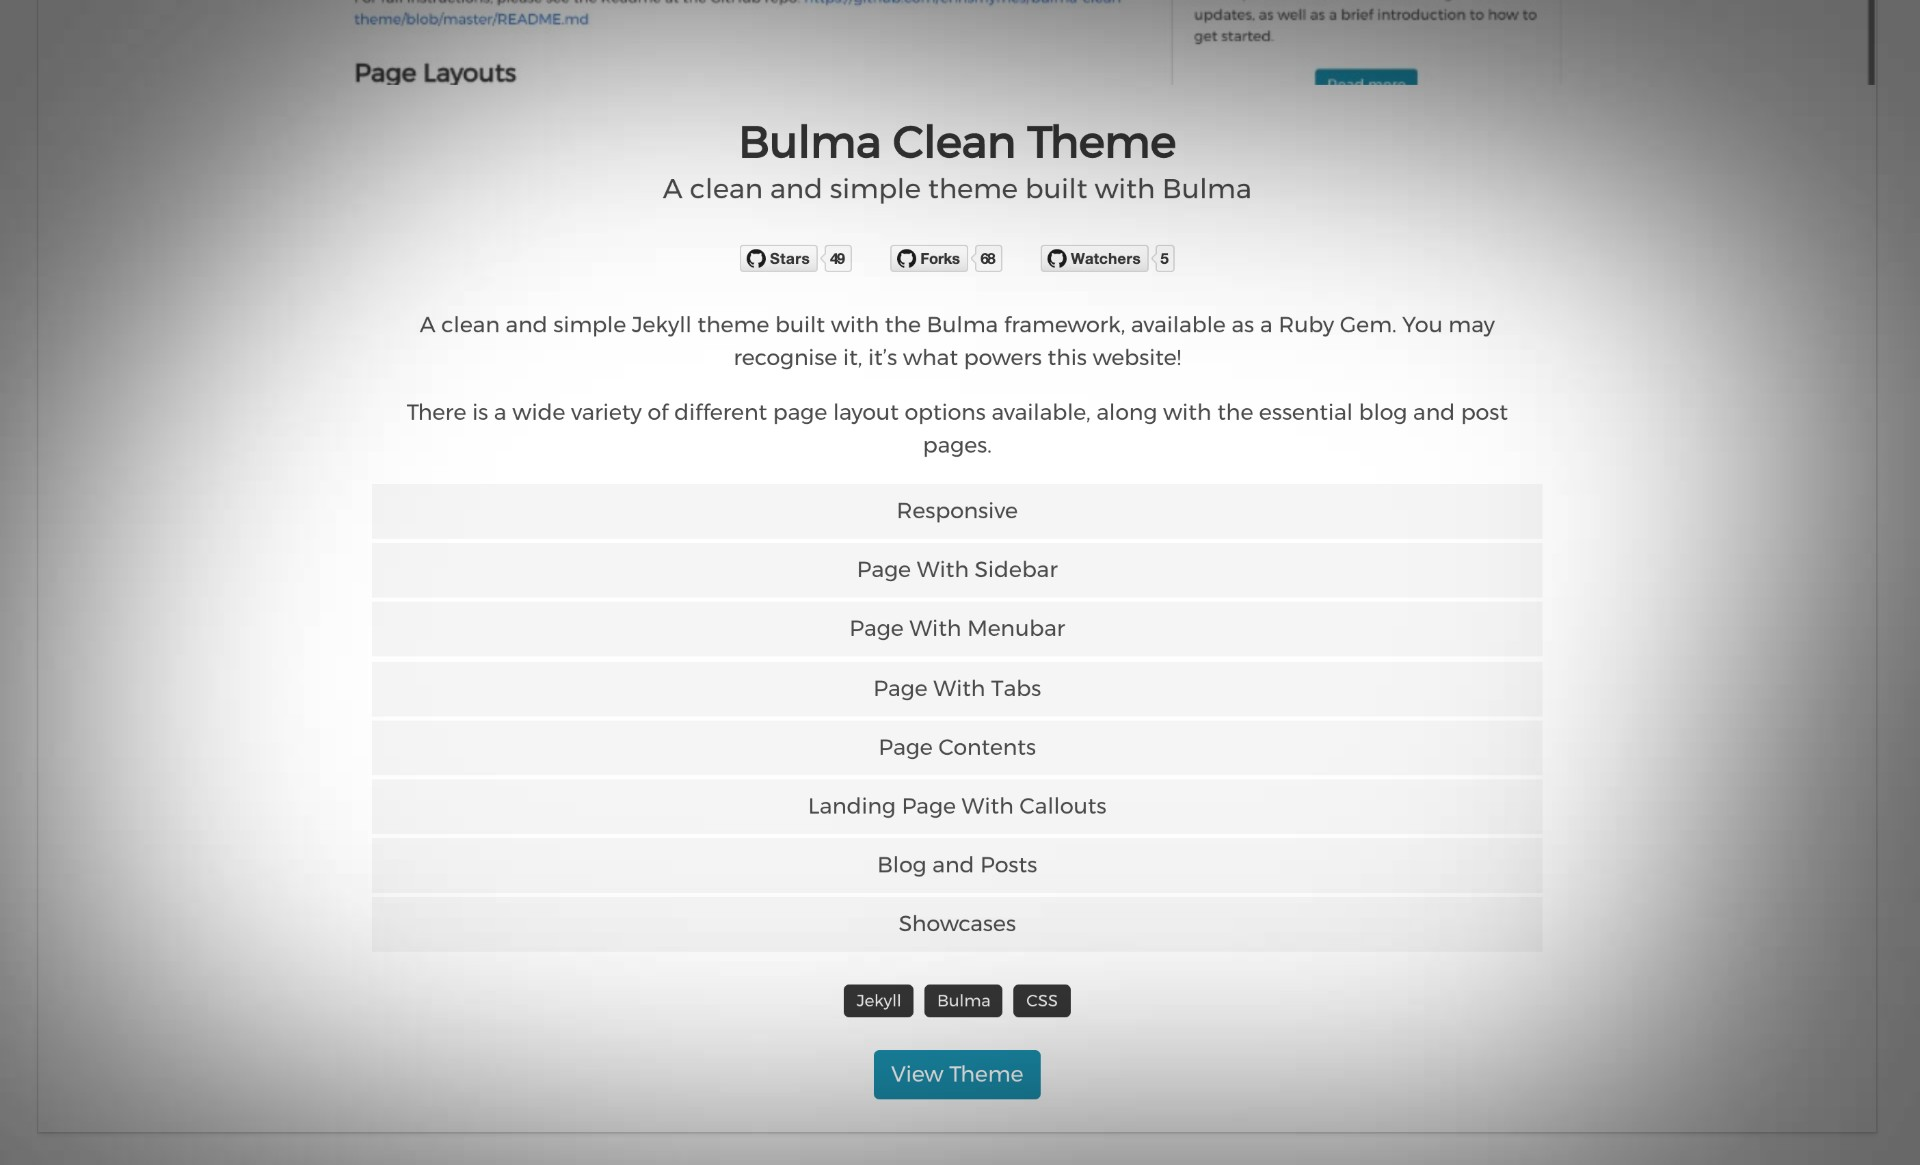 Lessons learned designing the Showcase layout for Bulma Clean Theme